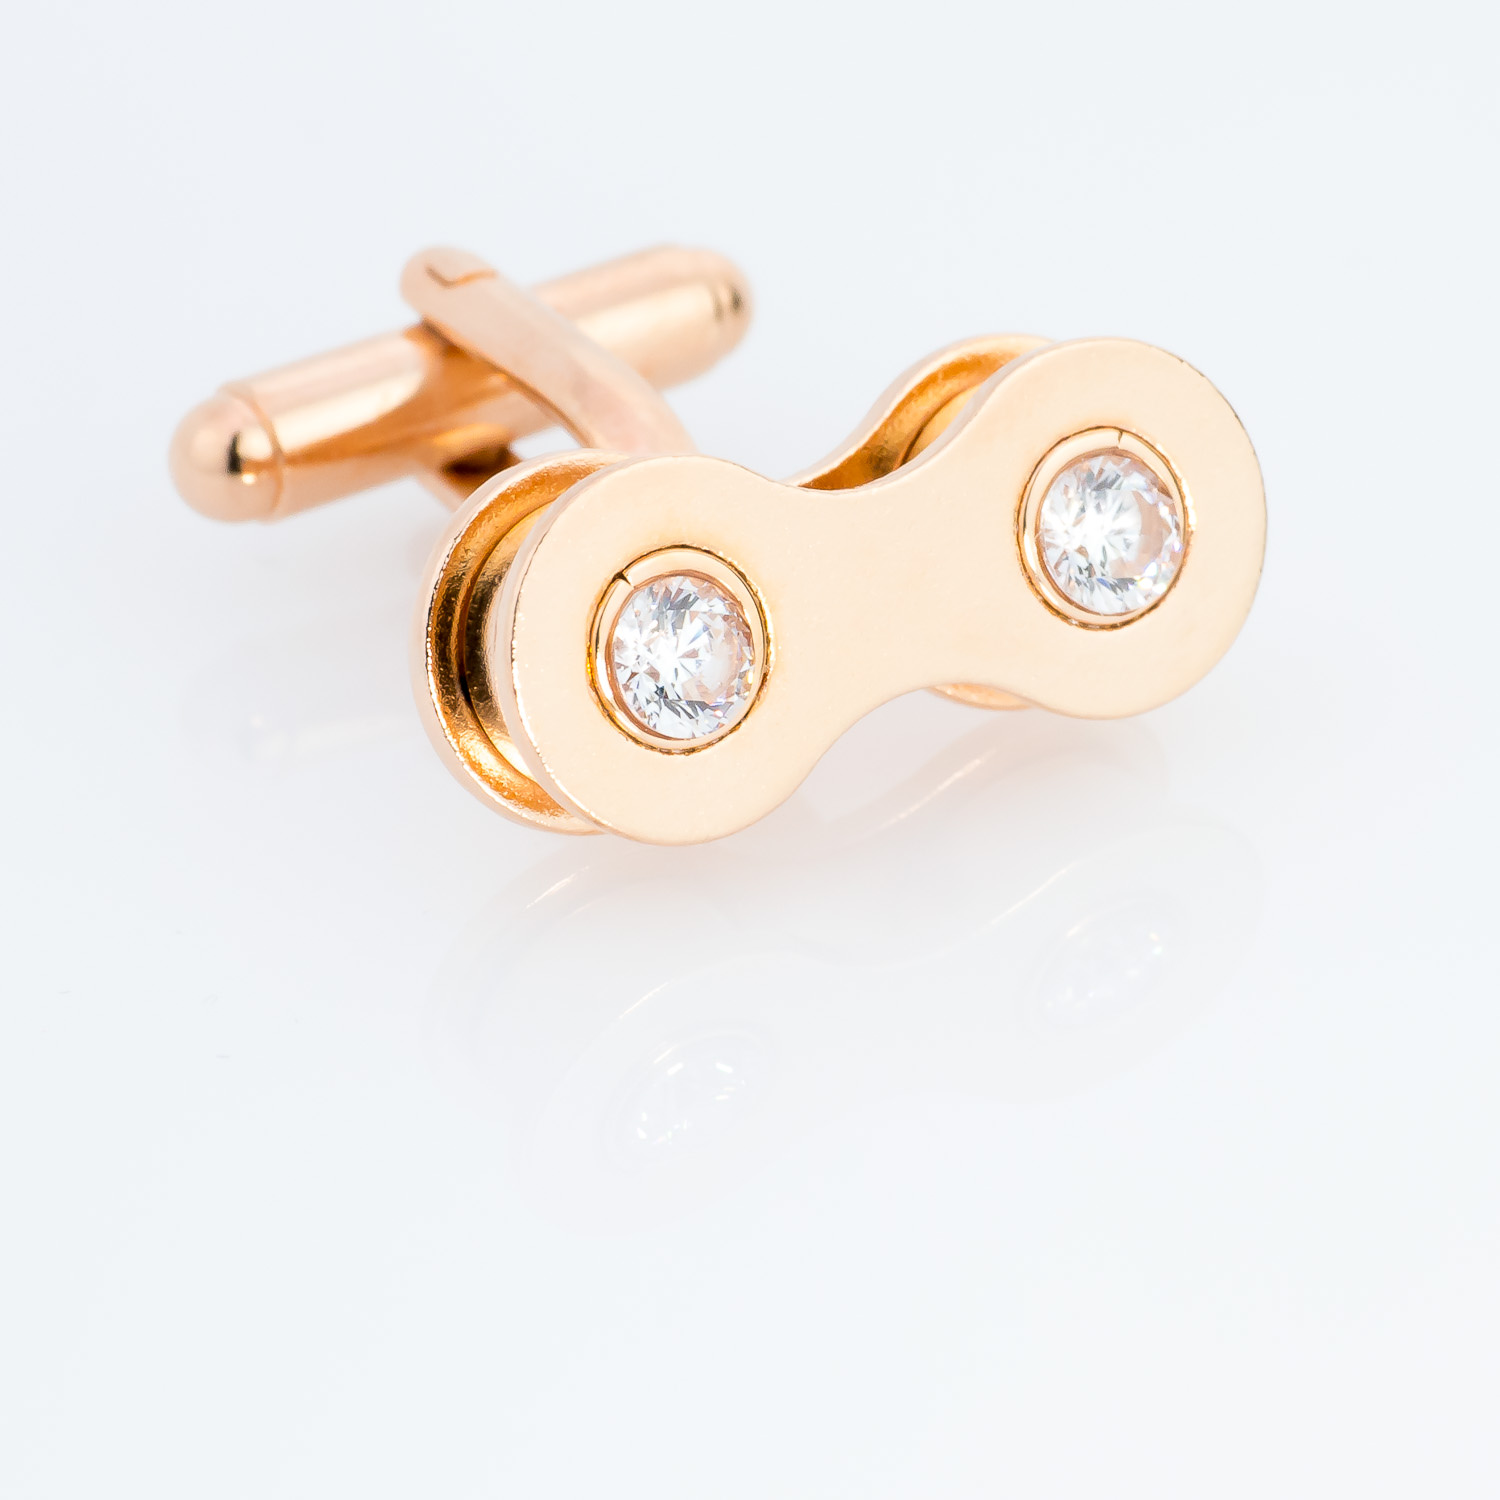 Shop Rose Gold Cufflinks -